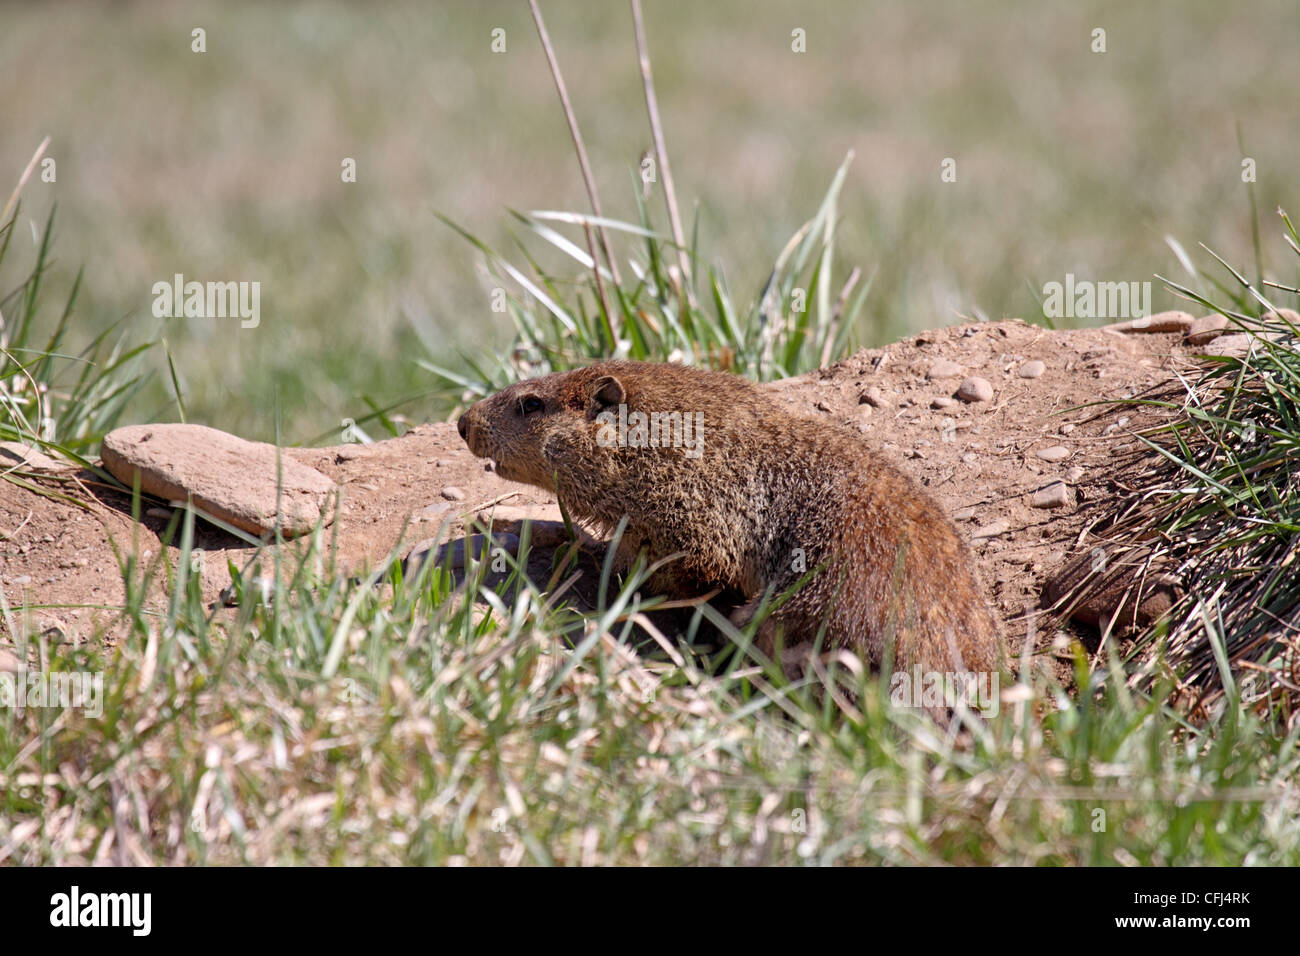 Groundhog or Woodchuck sitting at entrance to burrow in field in North Carolina - Stock Image